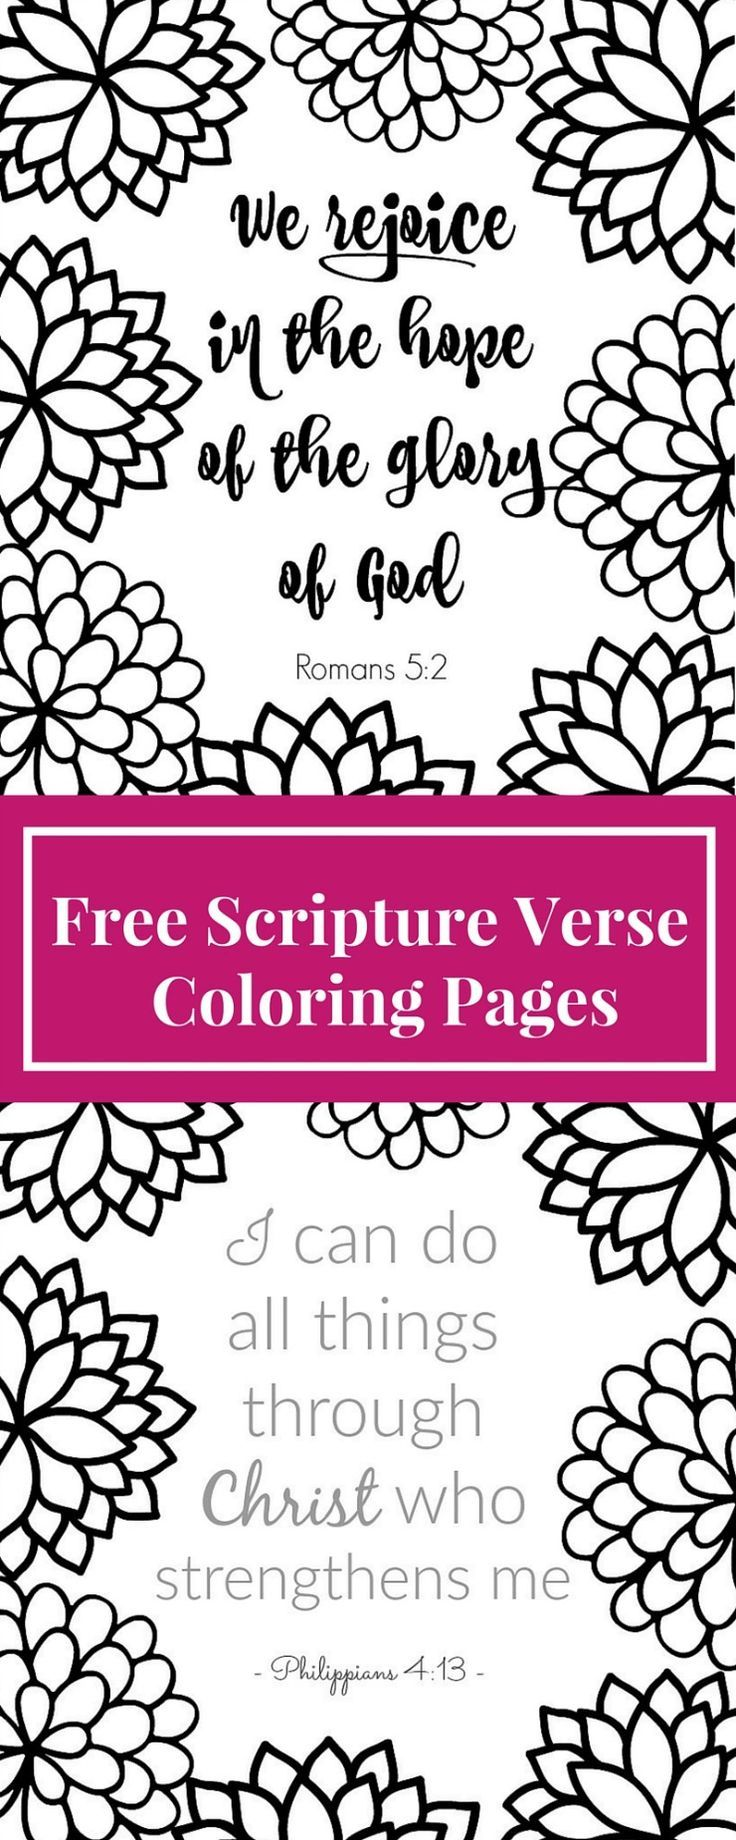 Free Printable Scripture Verse Coloring Pages | Adult coloring, Free ...